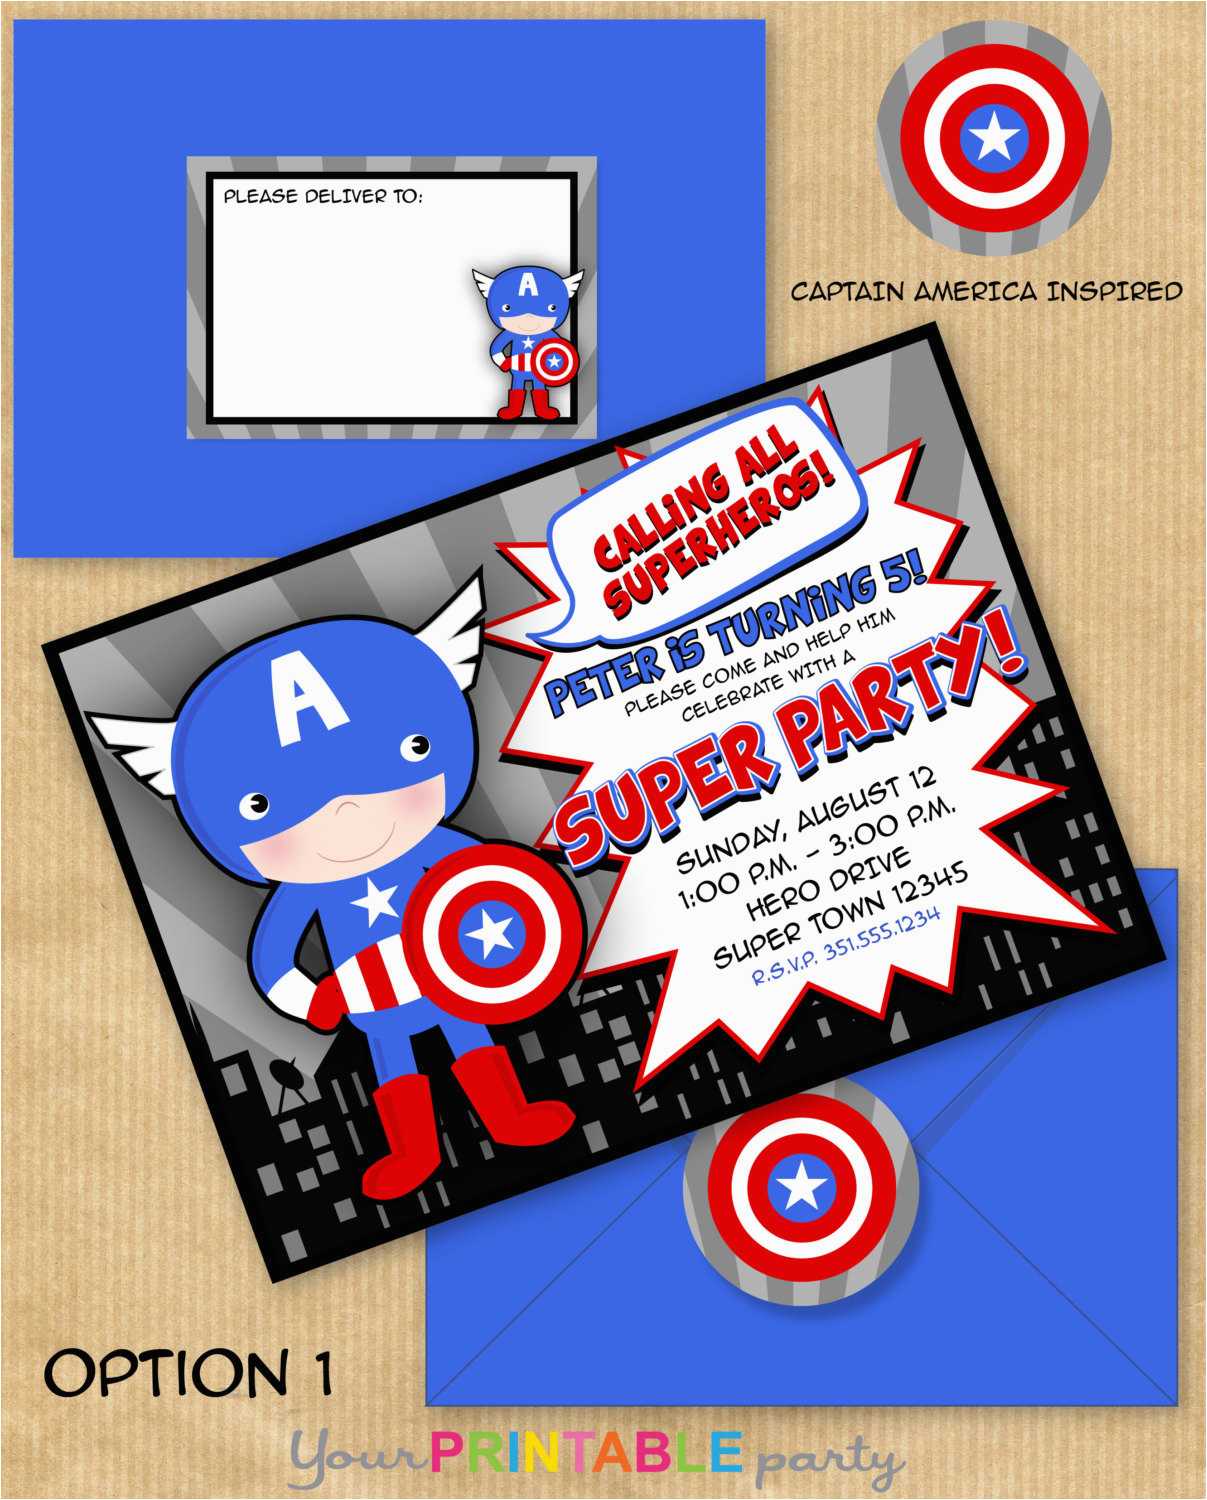 captain america inspired invitation with